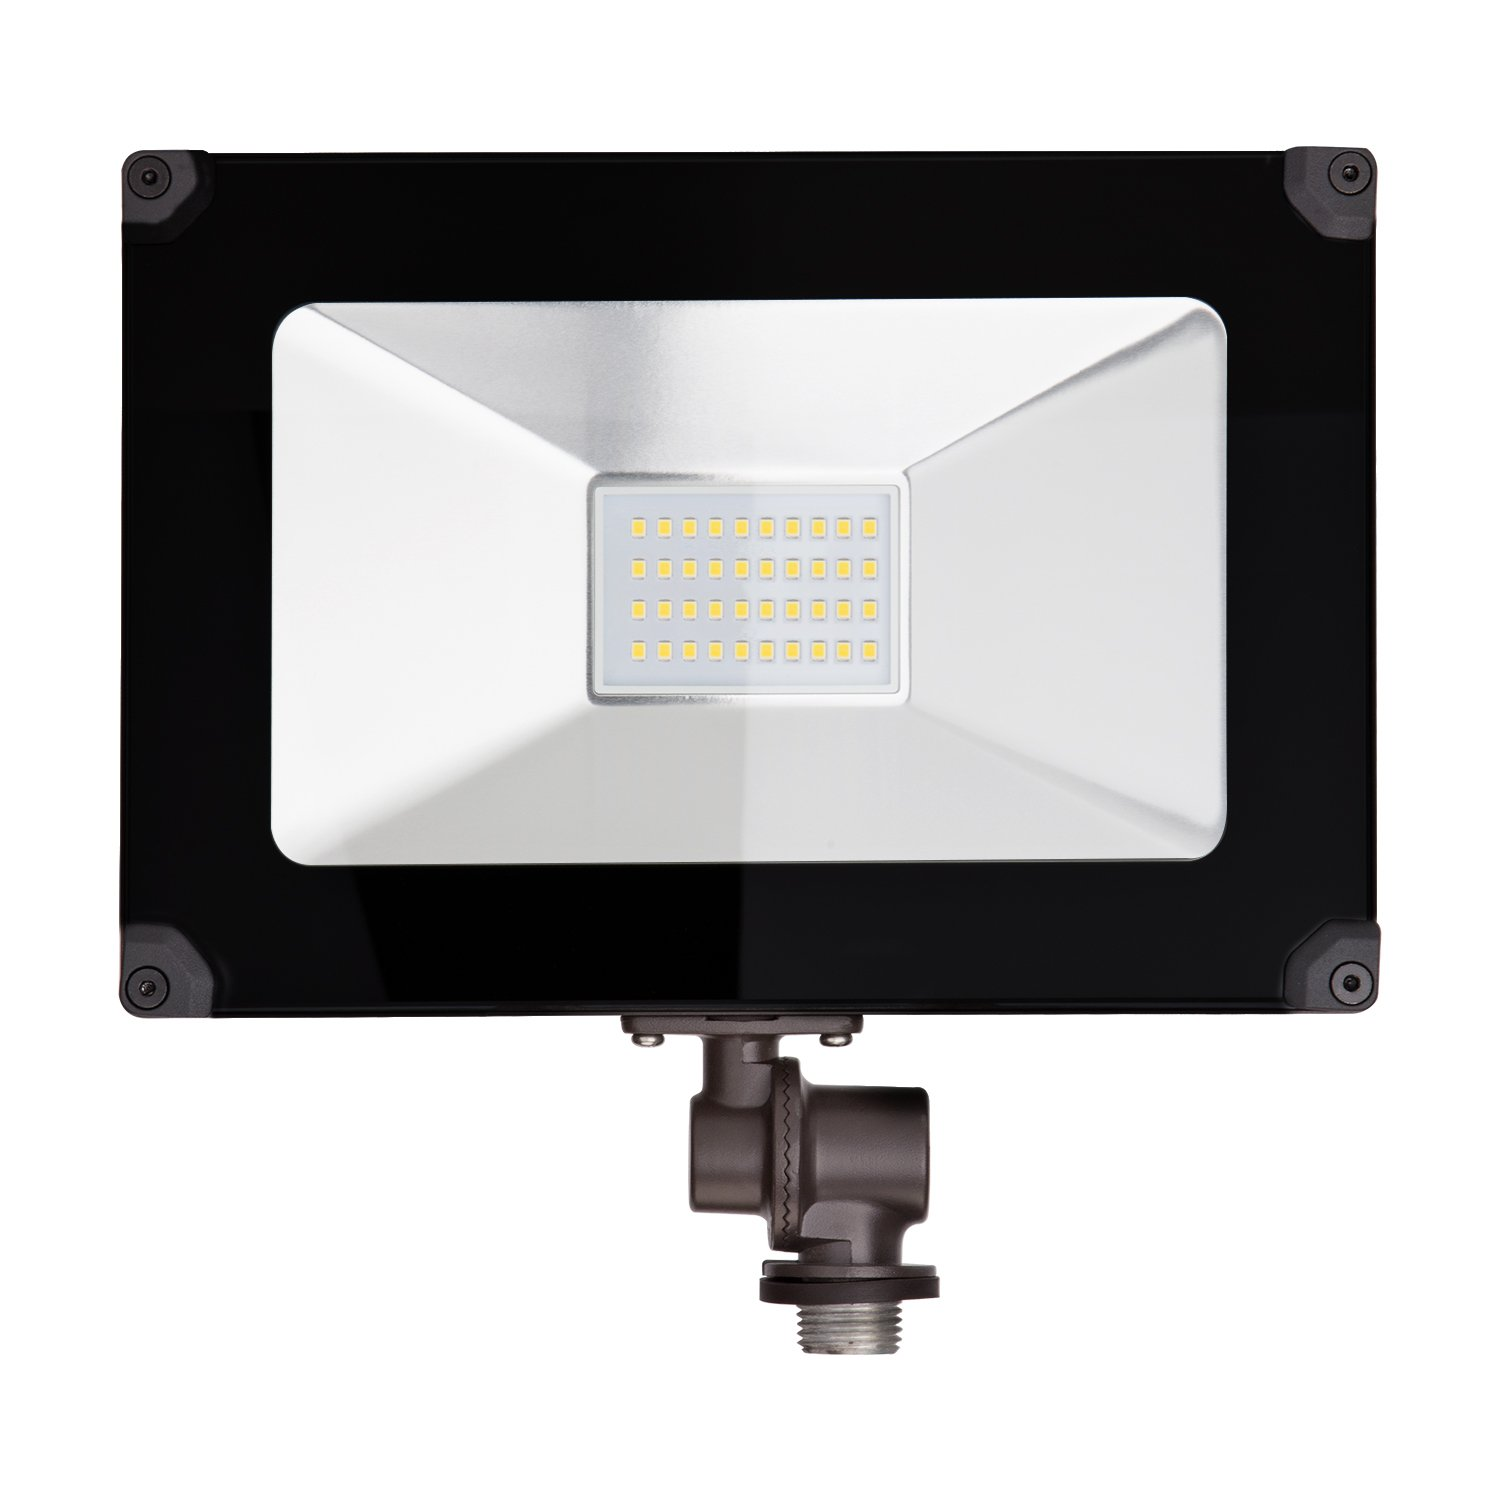 ALOTOA 30W LED Flood Light with Knuckle Mount Super Slim SMD Outdoor [3000lm] Security Lights UL Listed(4000K)